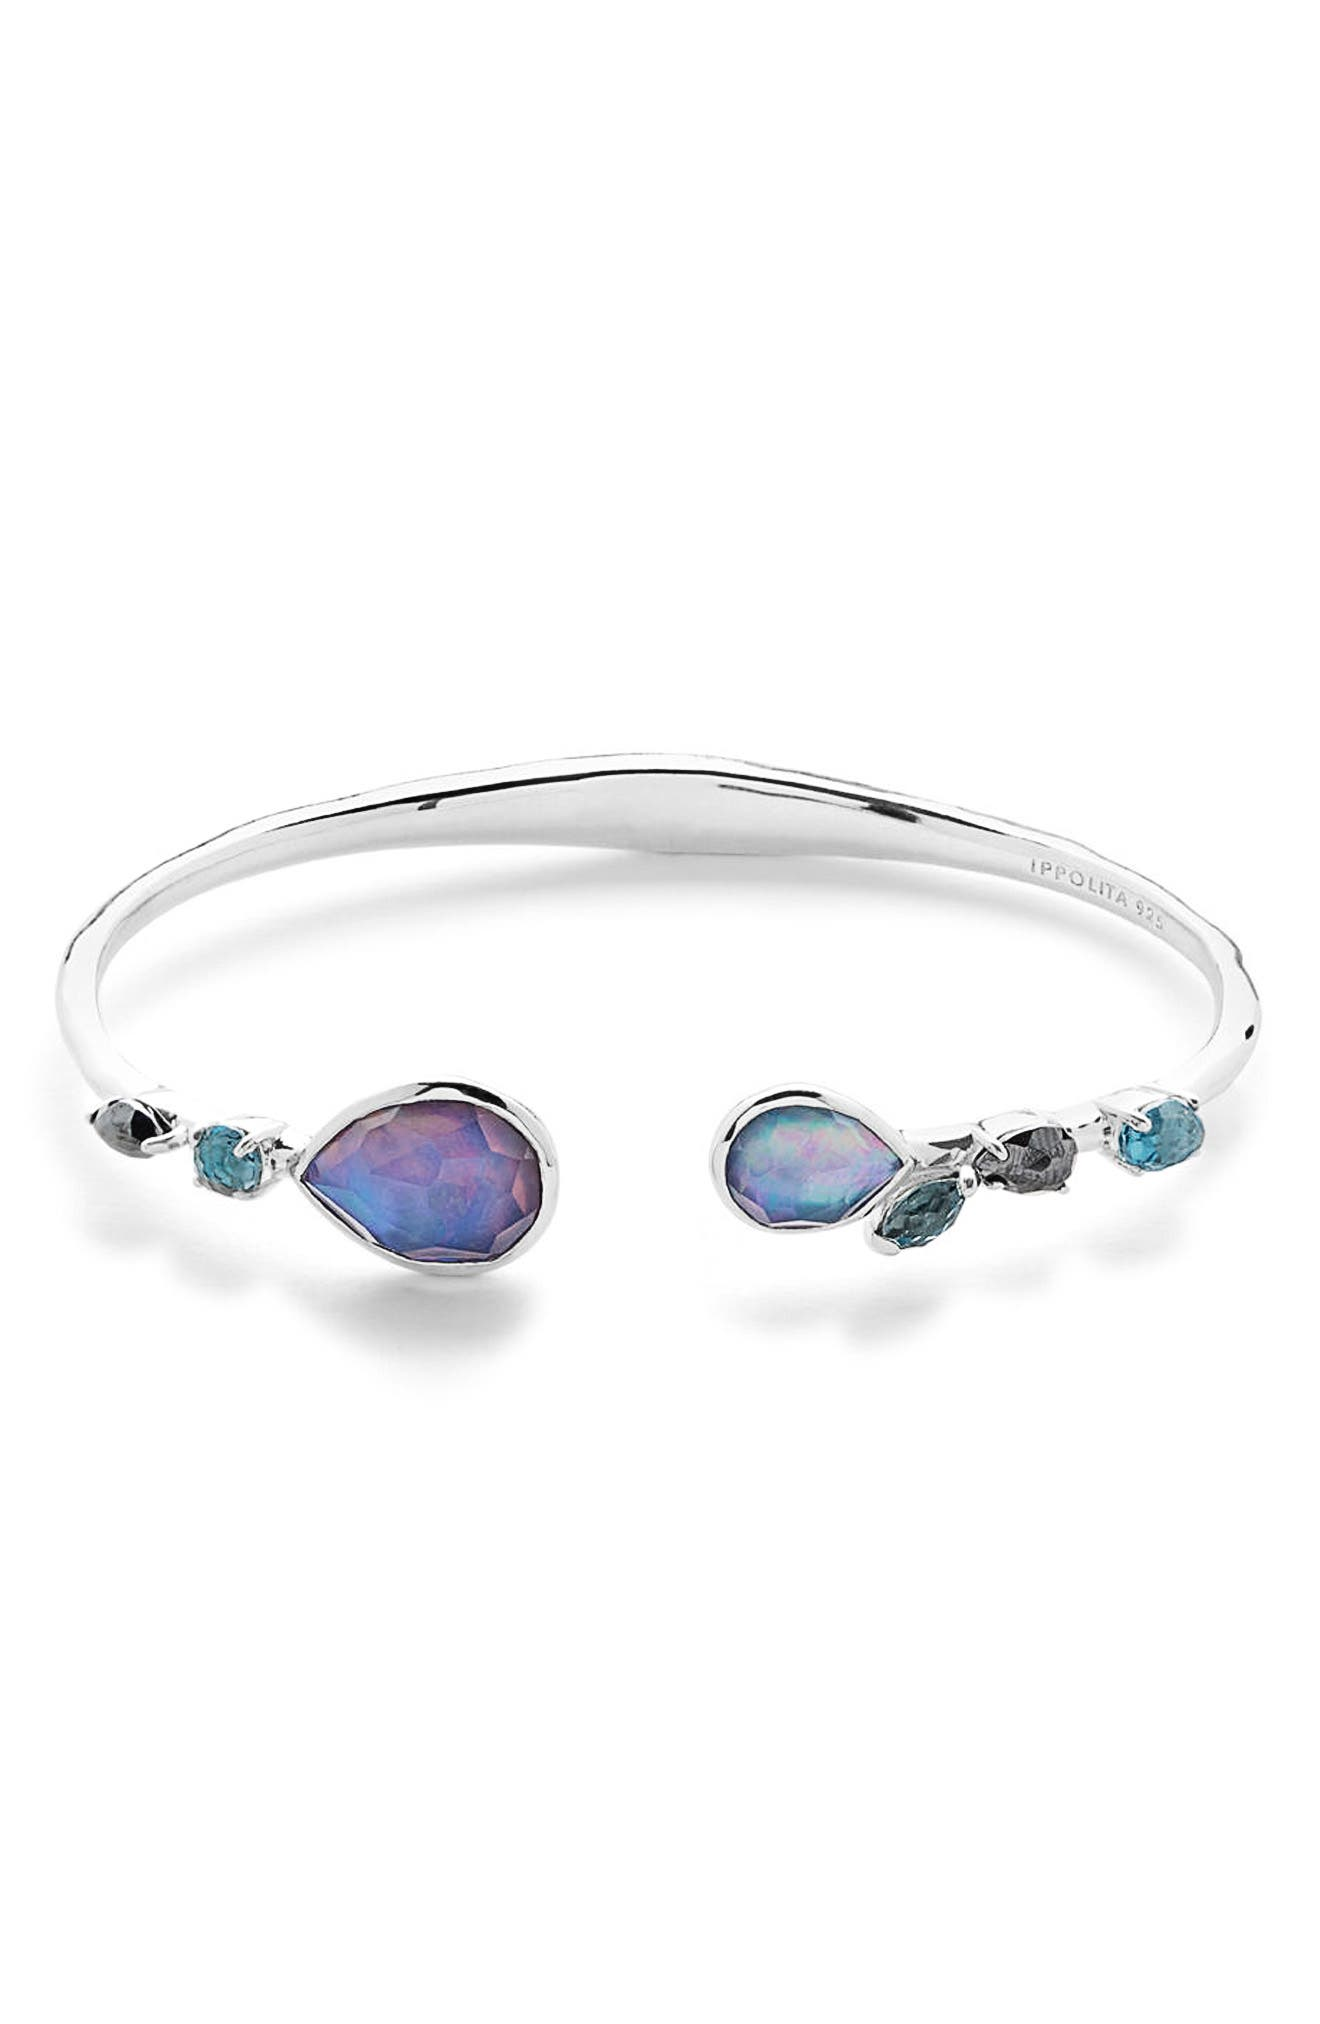 Rock Candy Skinny Cuff,                             Main thumbnail 1, color,                             Eclipse